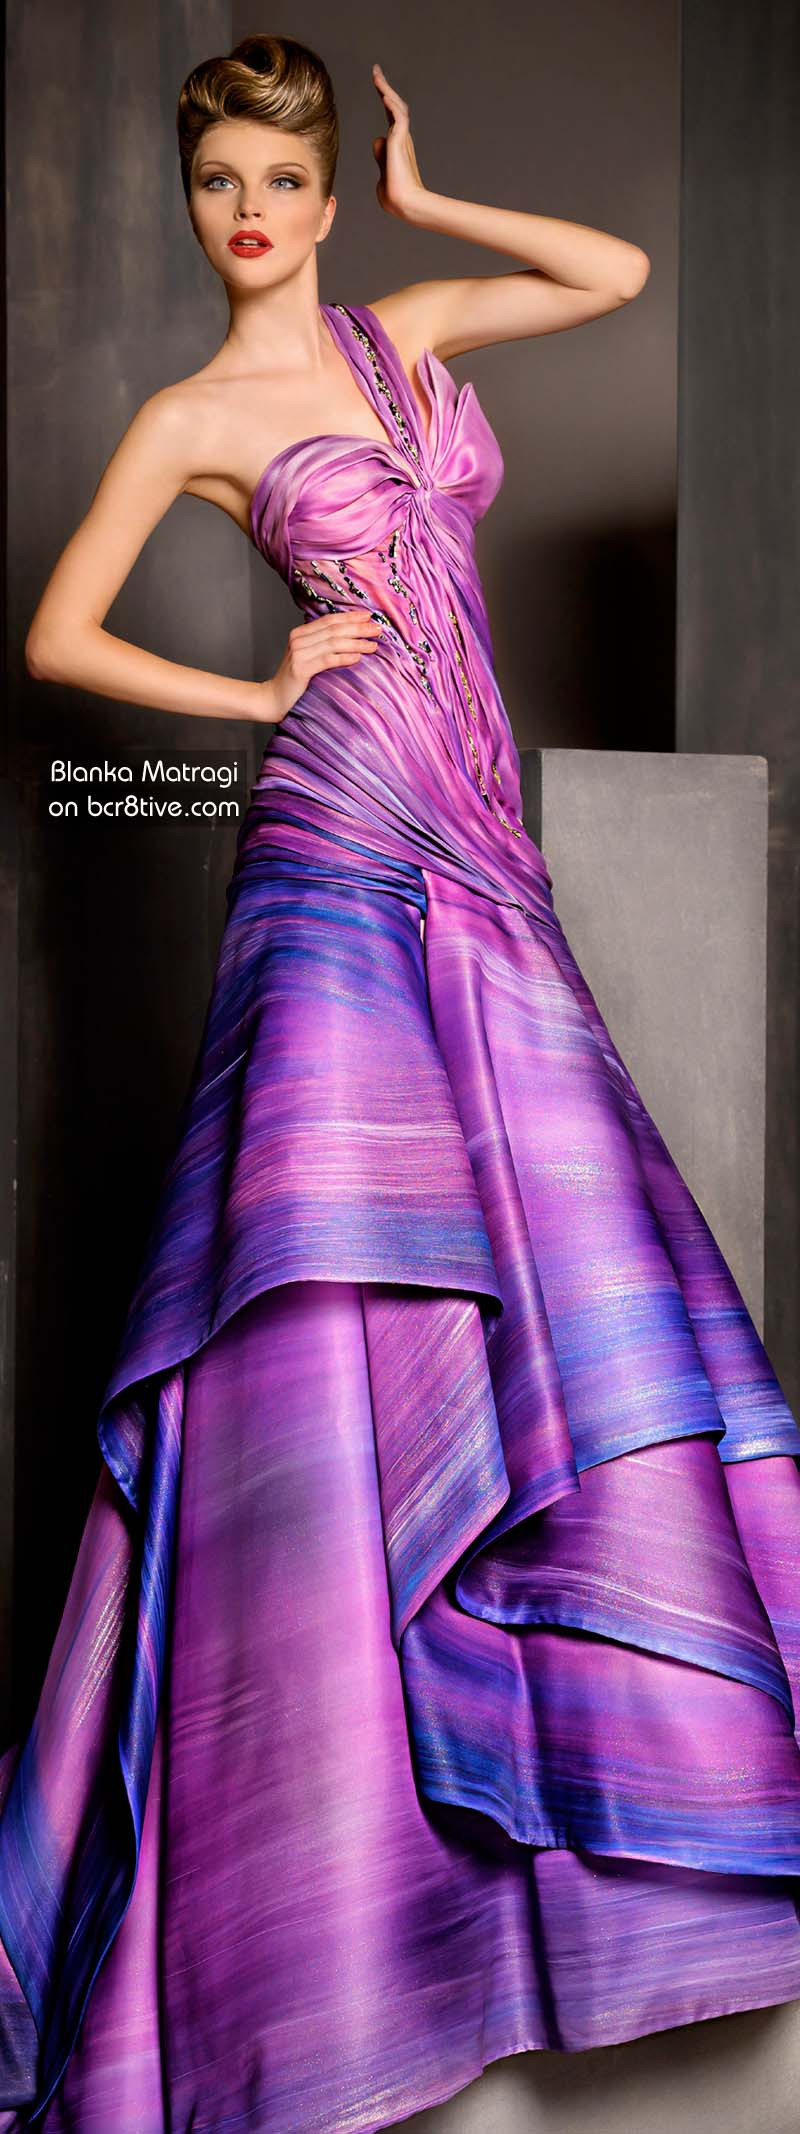 The Versatile Talents of Artisan Blanka Matragi » Blanka Matragi 30th Anniversary Couture Collection